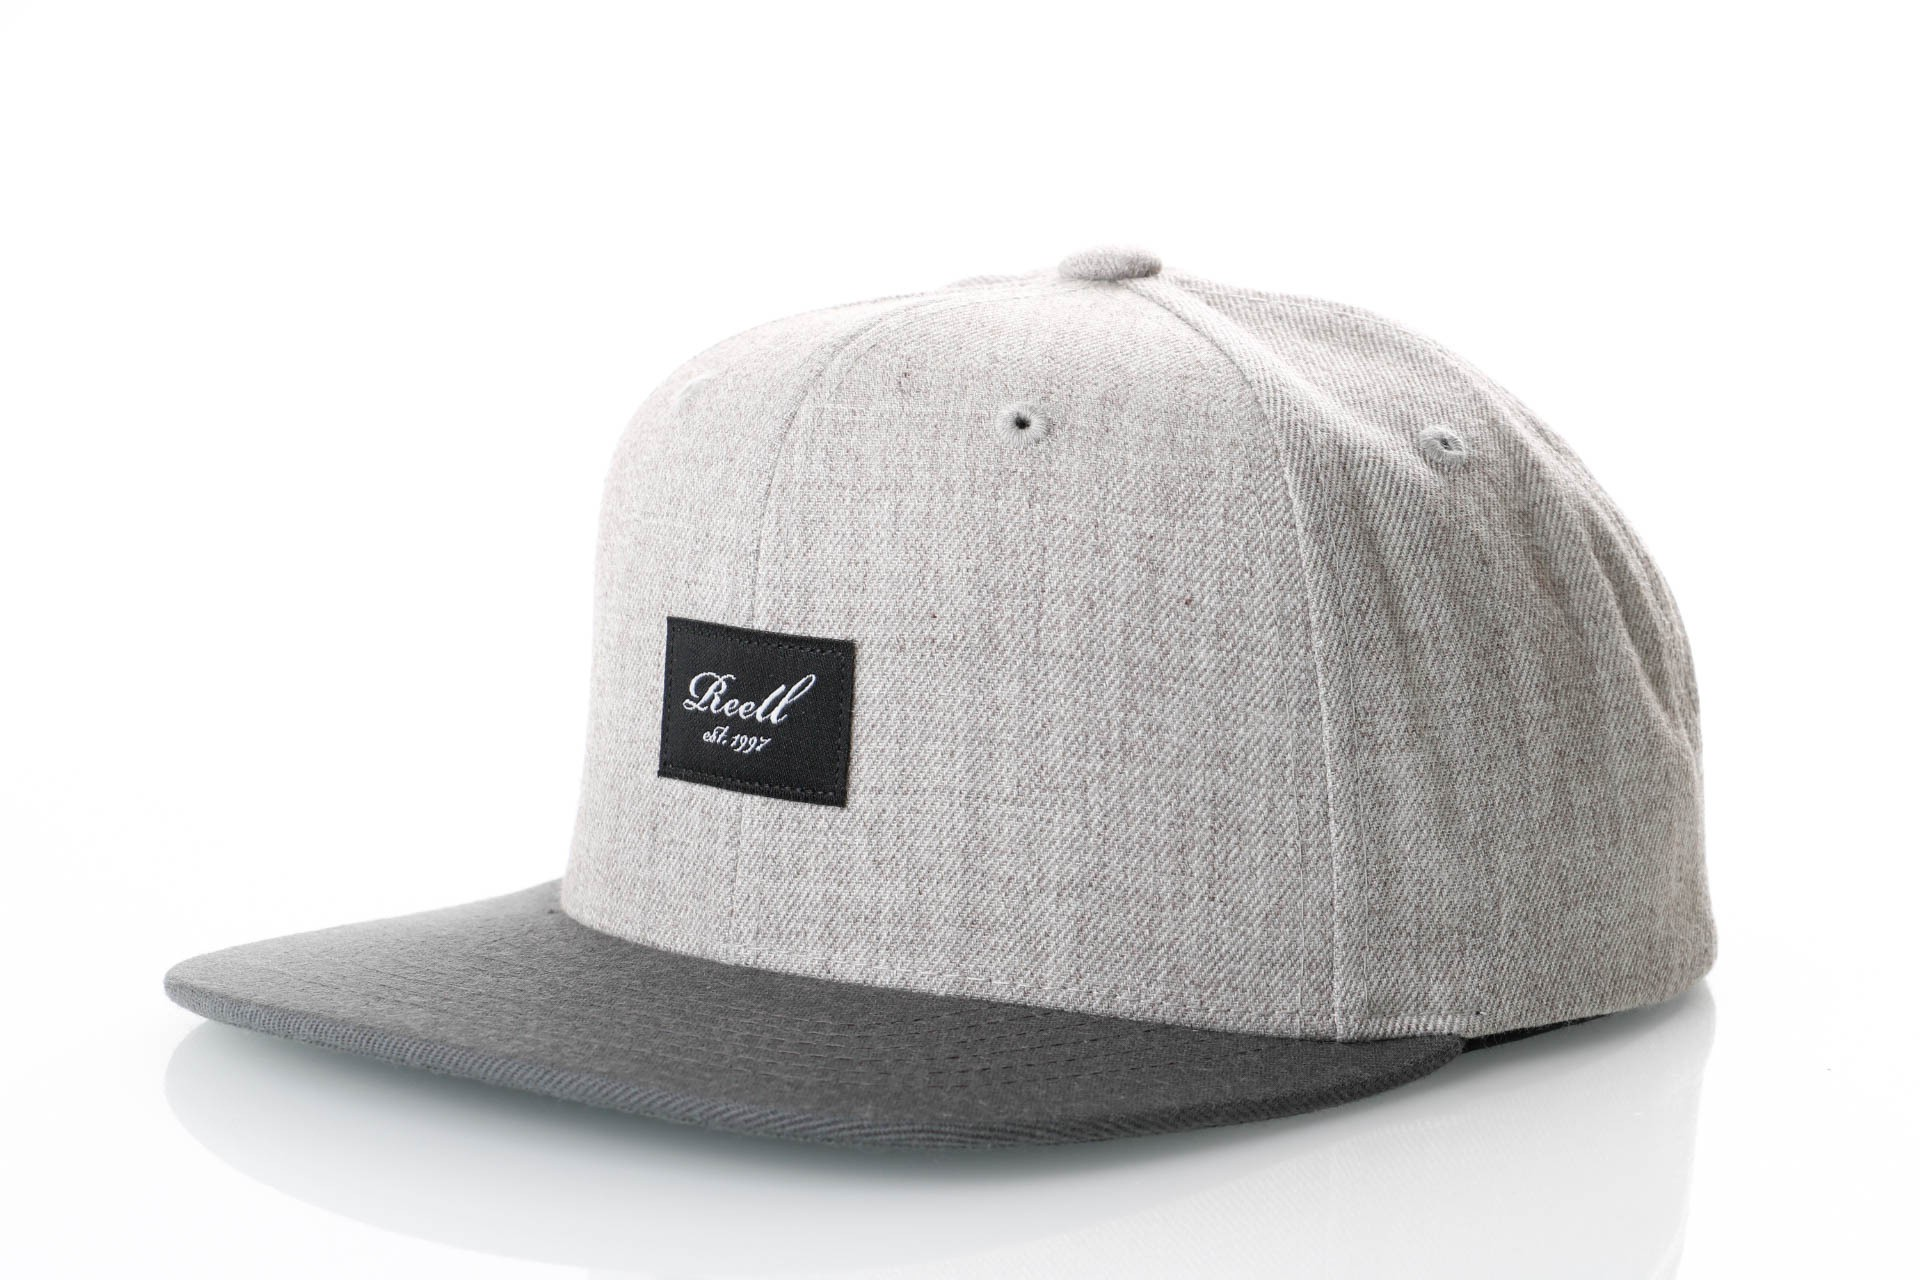 Foto van Reell Pitchout Cap 1402-041 Snapback Cap Heather L. Grey / Grey Black